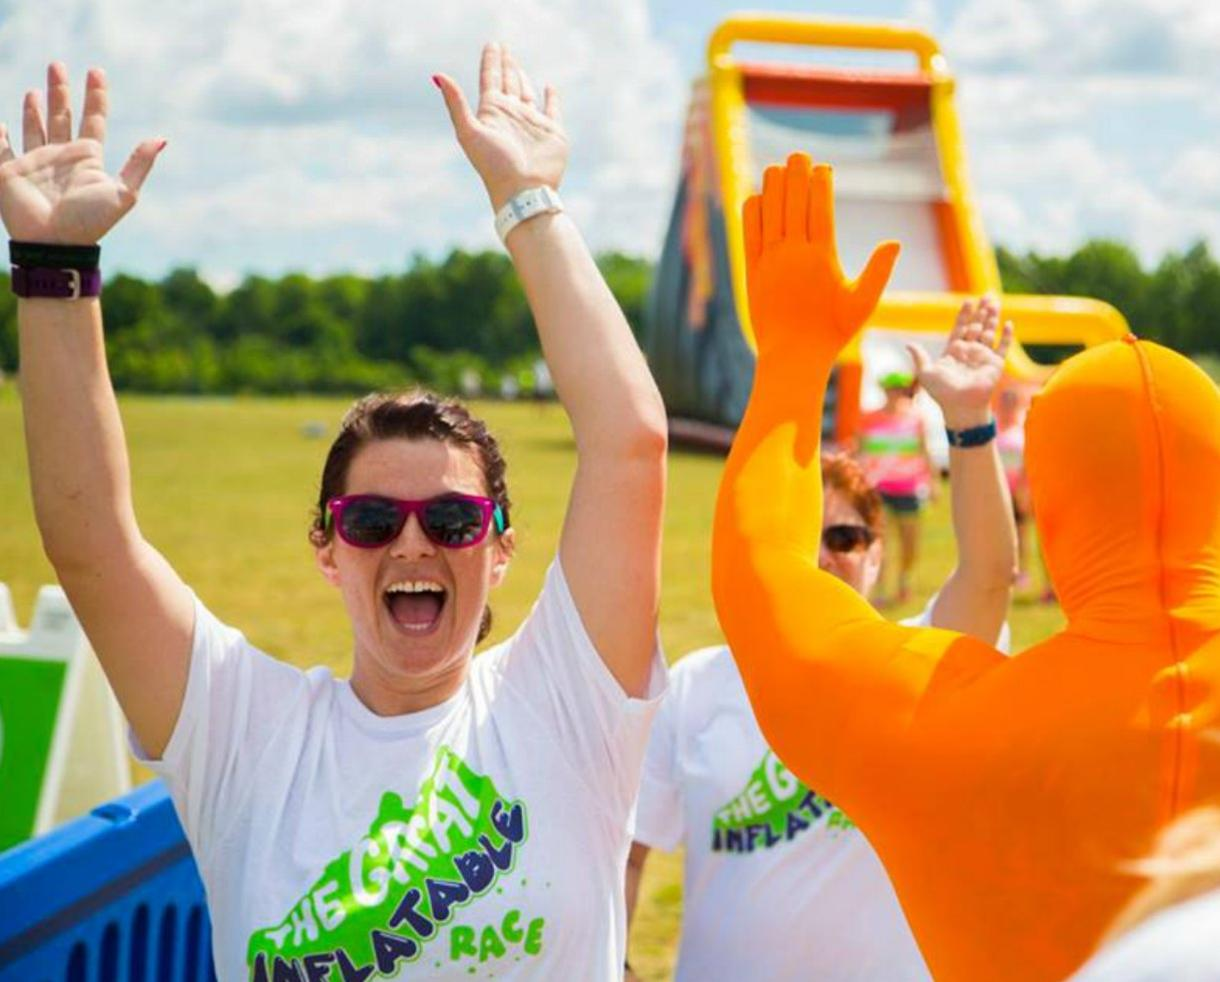 $24.99+ for One Entry to The Great Inflatable Race on November 10 in Atlanta (Up to 67% Off!)